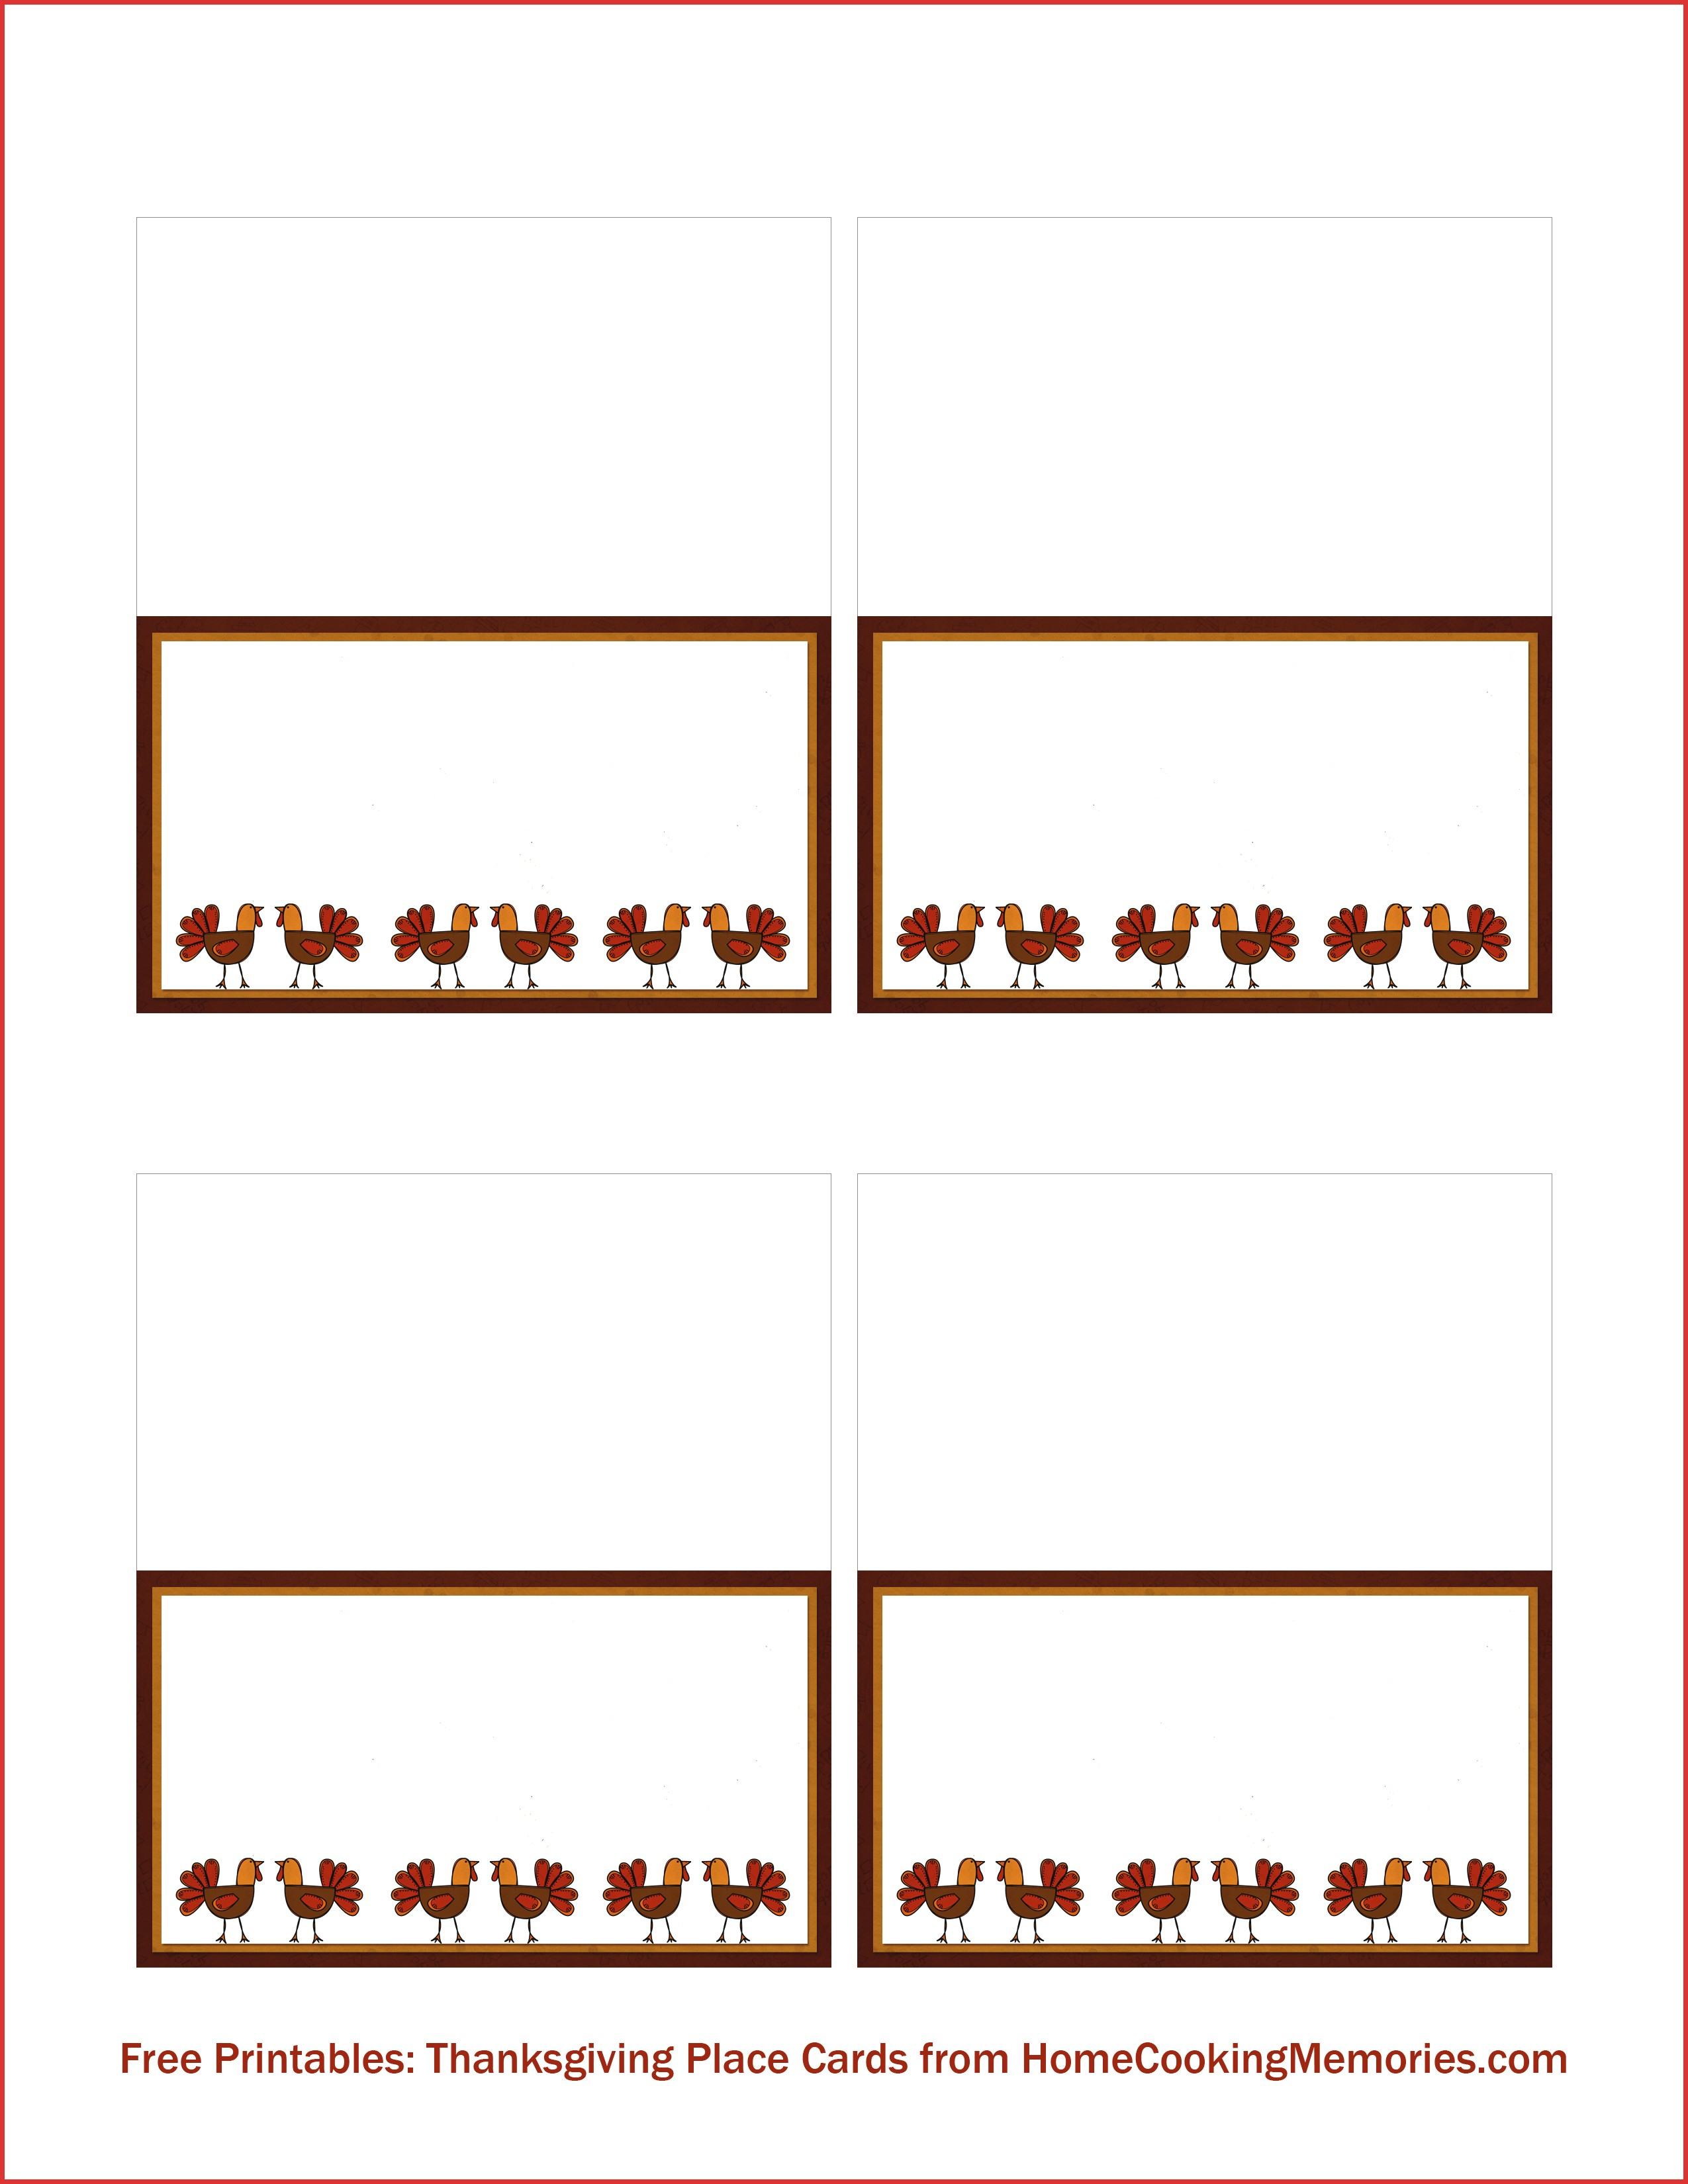 025 Printable Place Cards Template New Gameshacksfree Of ~ Ulyssesroom - Free Printable Place Card Templates Christmas